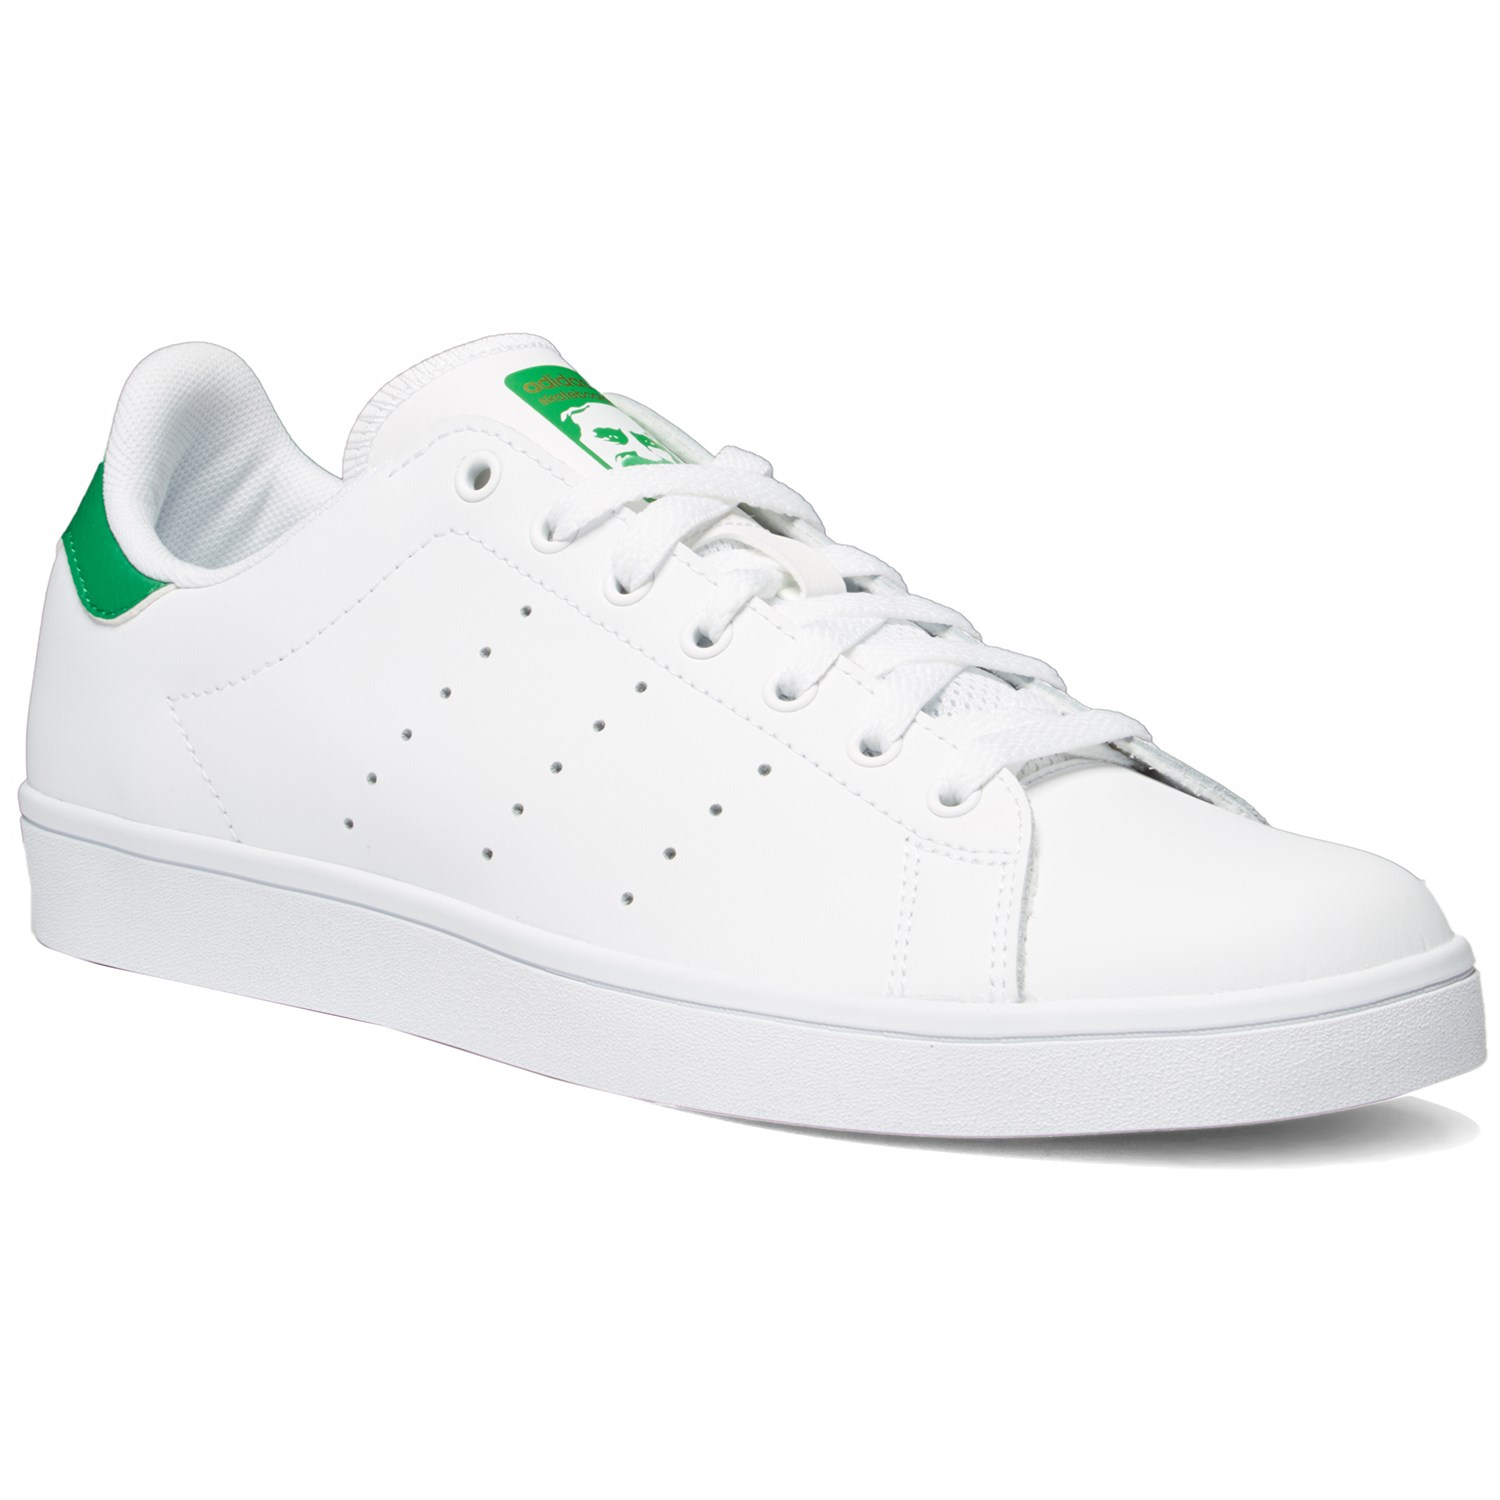 buy popular f0645 6975e Adidas Stan Smith Vulc Shoes | evo